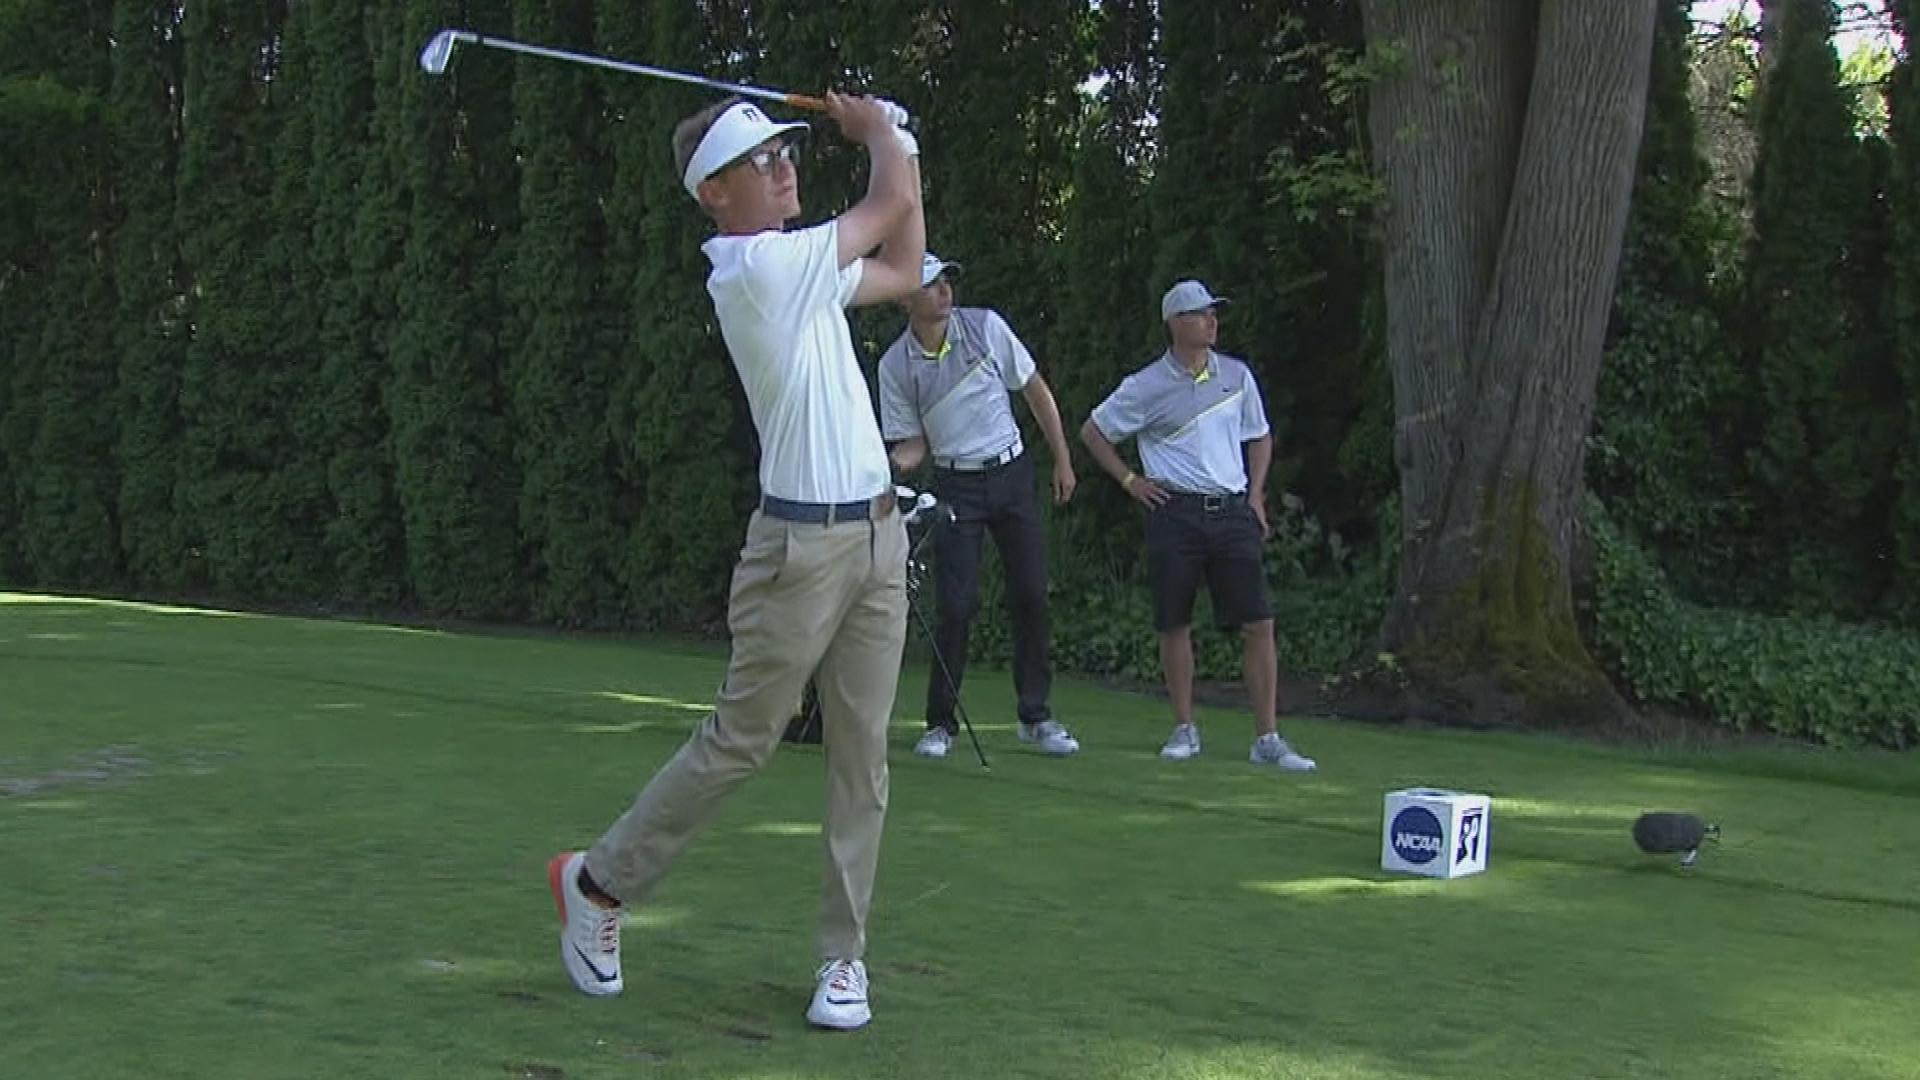 http://golfchannel-a.akamaihd.net/ramp/730/407/102616_cc_east_lake_cup_mens_preview.jpg